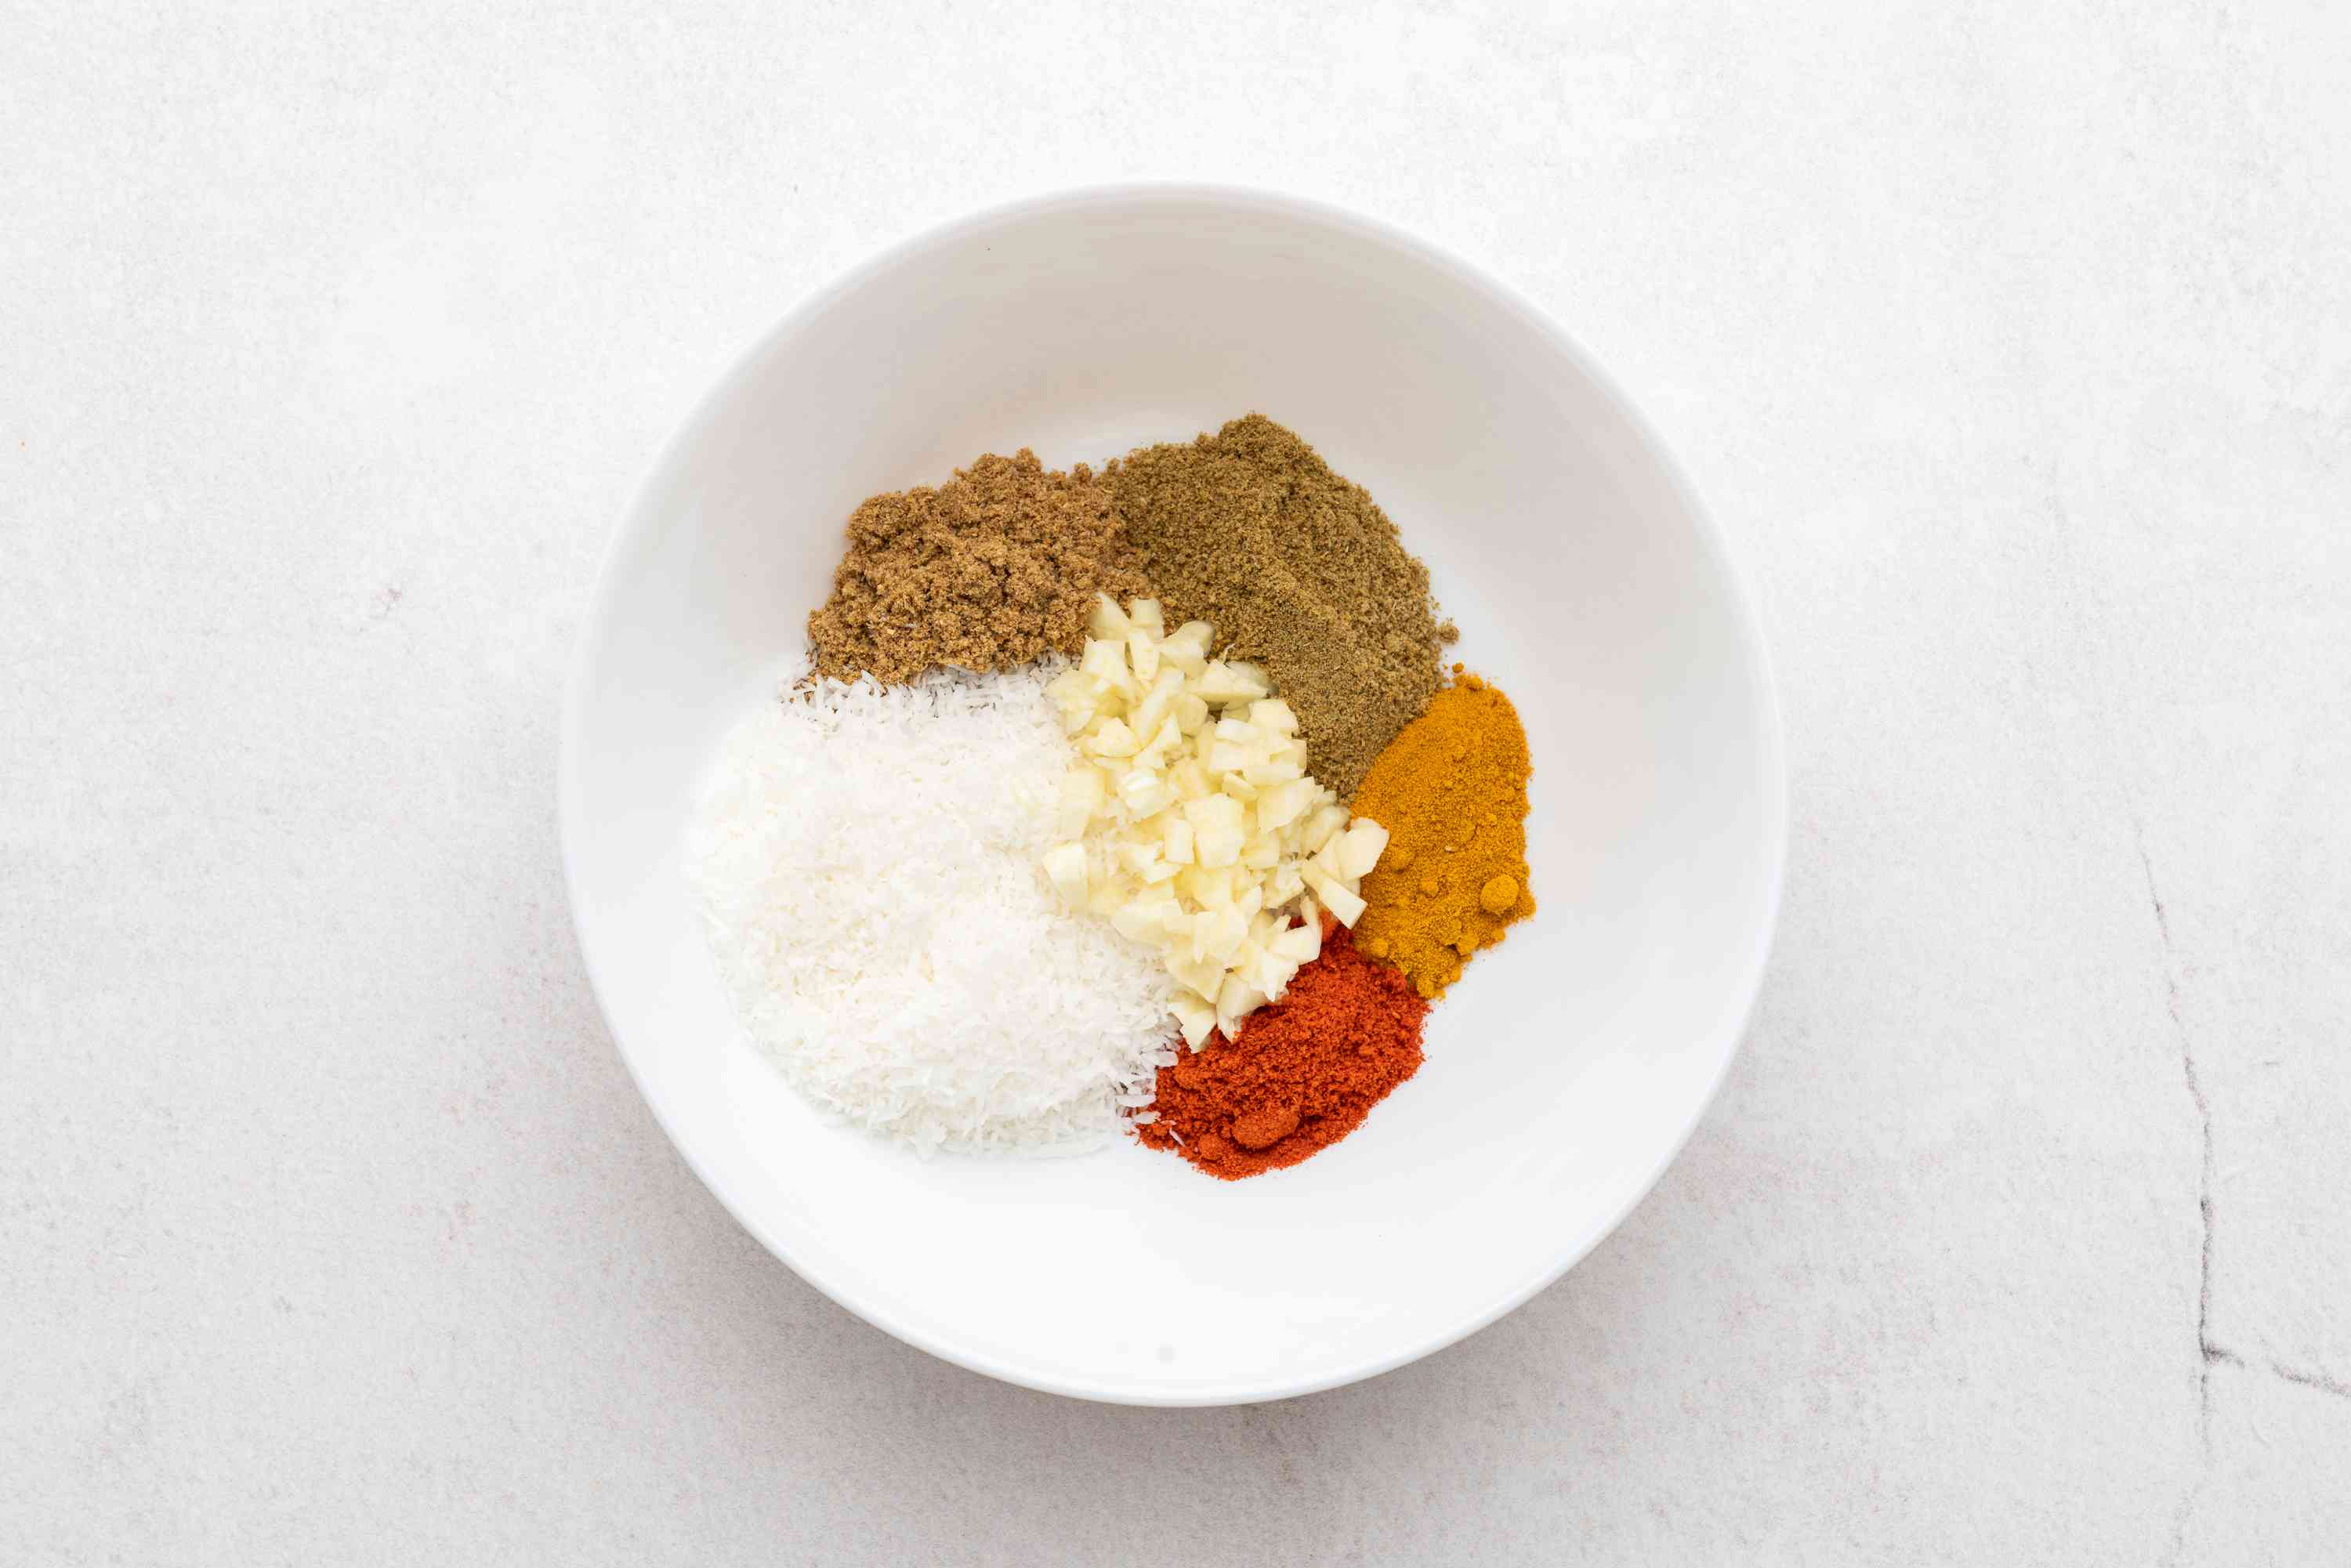 Place coriander, cumin, turmeric, red chilies, coconut and chopped garlic in a bowl